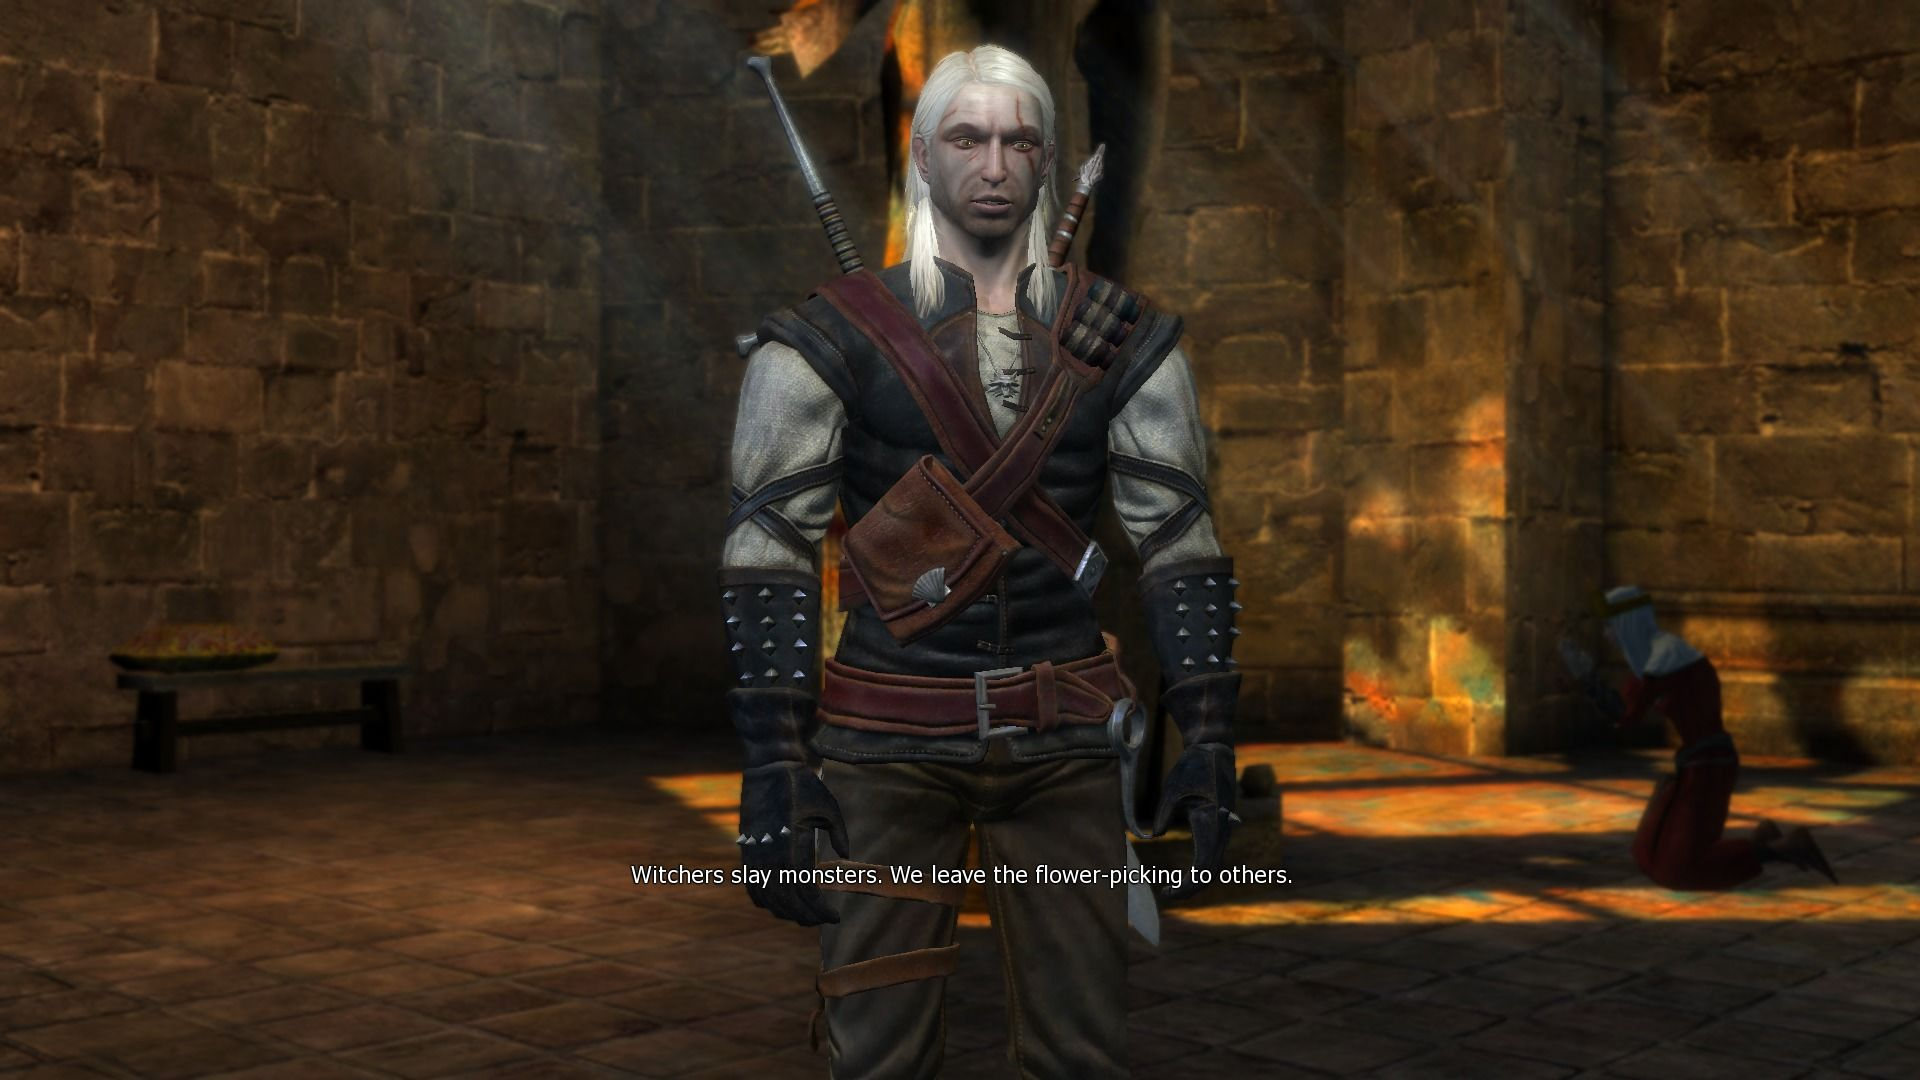 The witcher the enhanced edition